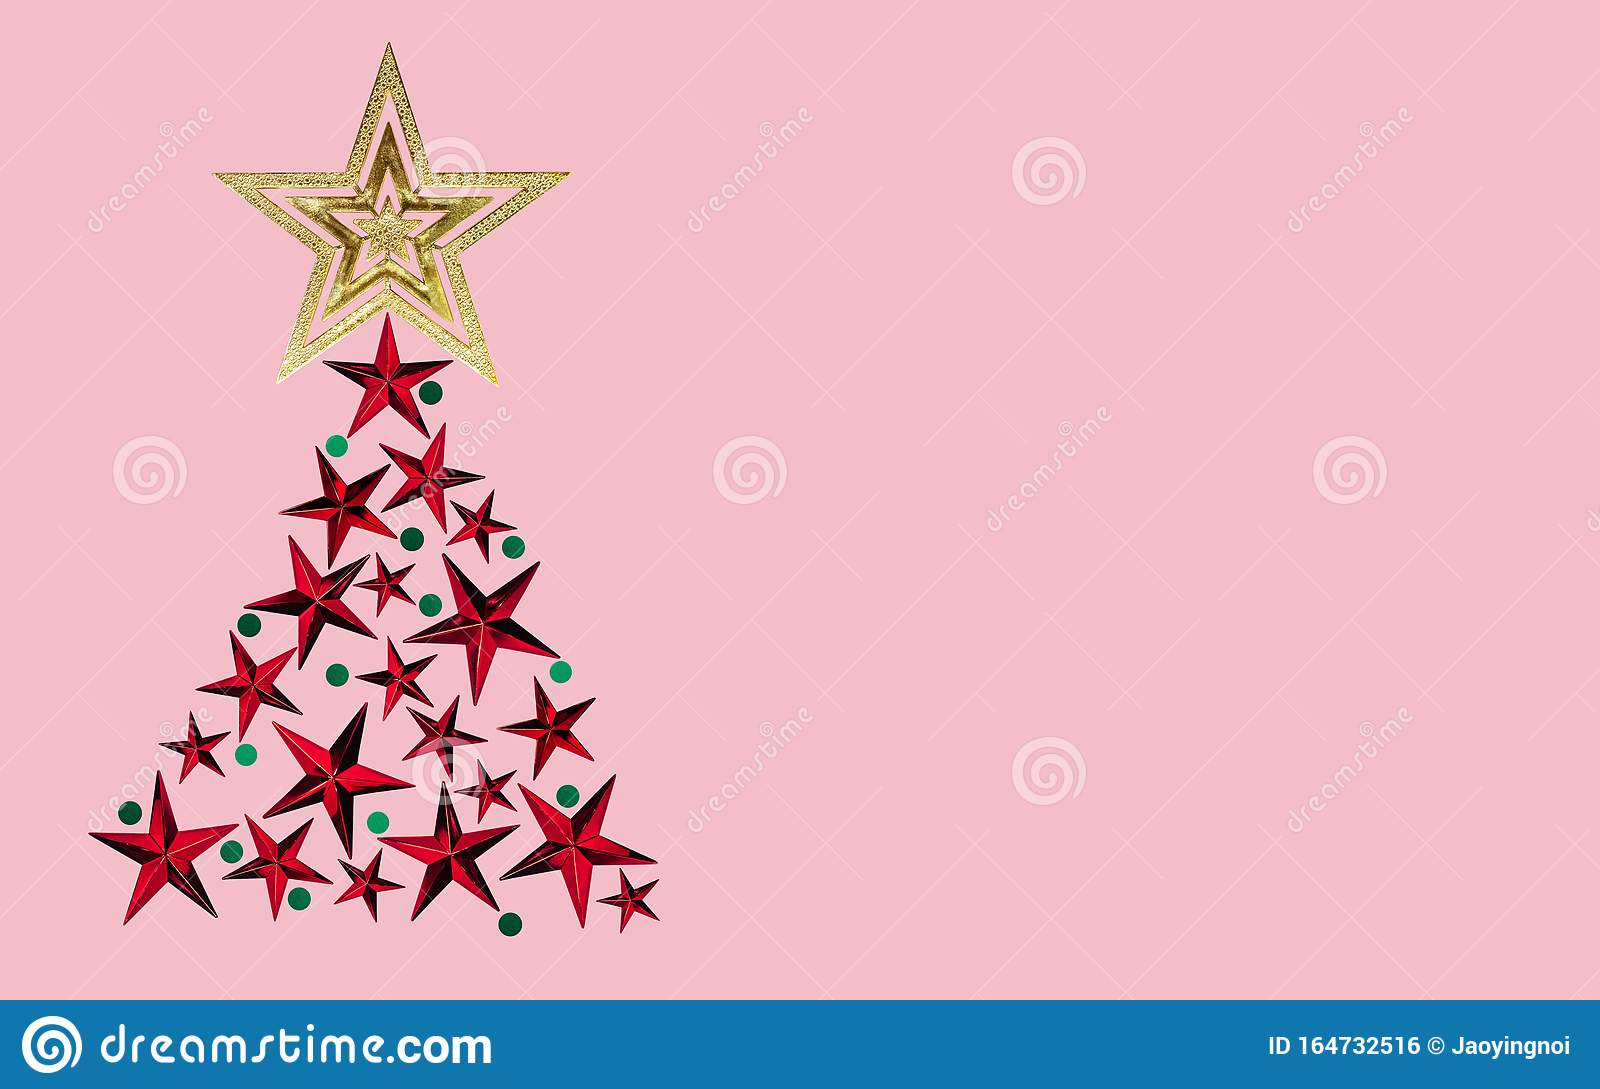 Christmas Tree Made From Gold Red Star Color With Green On Pink Background Artwork Minimal Pastel Illustration Design For New Yea Stock Illustration Illustration Of Flat Design 164732516